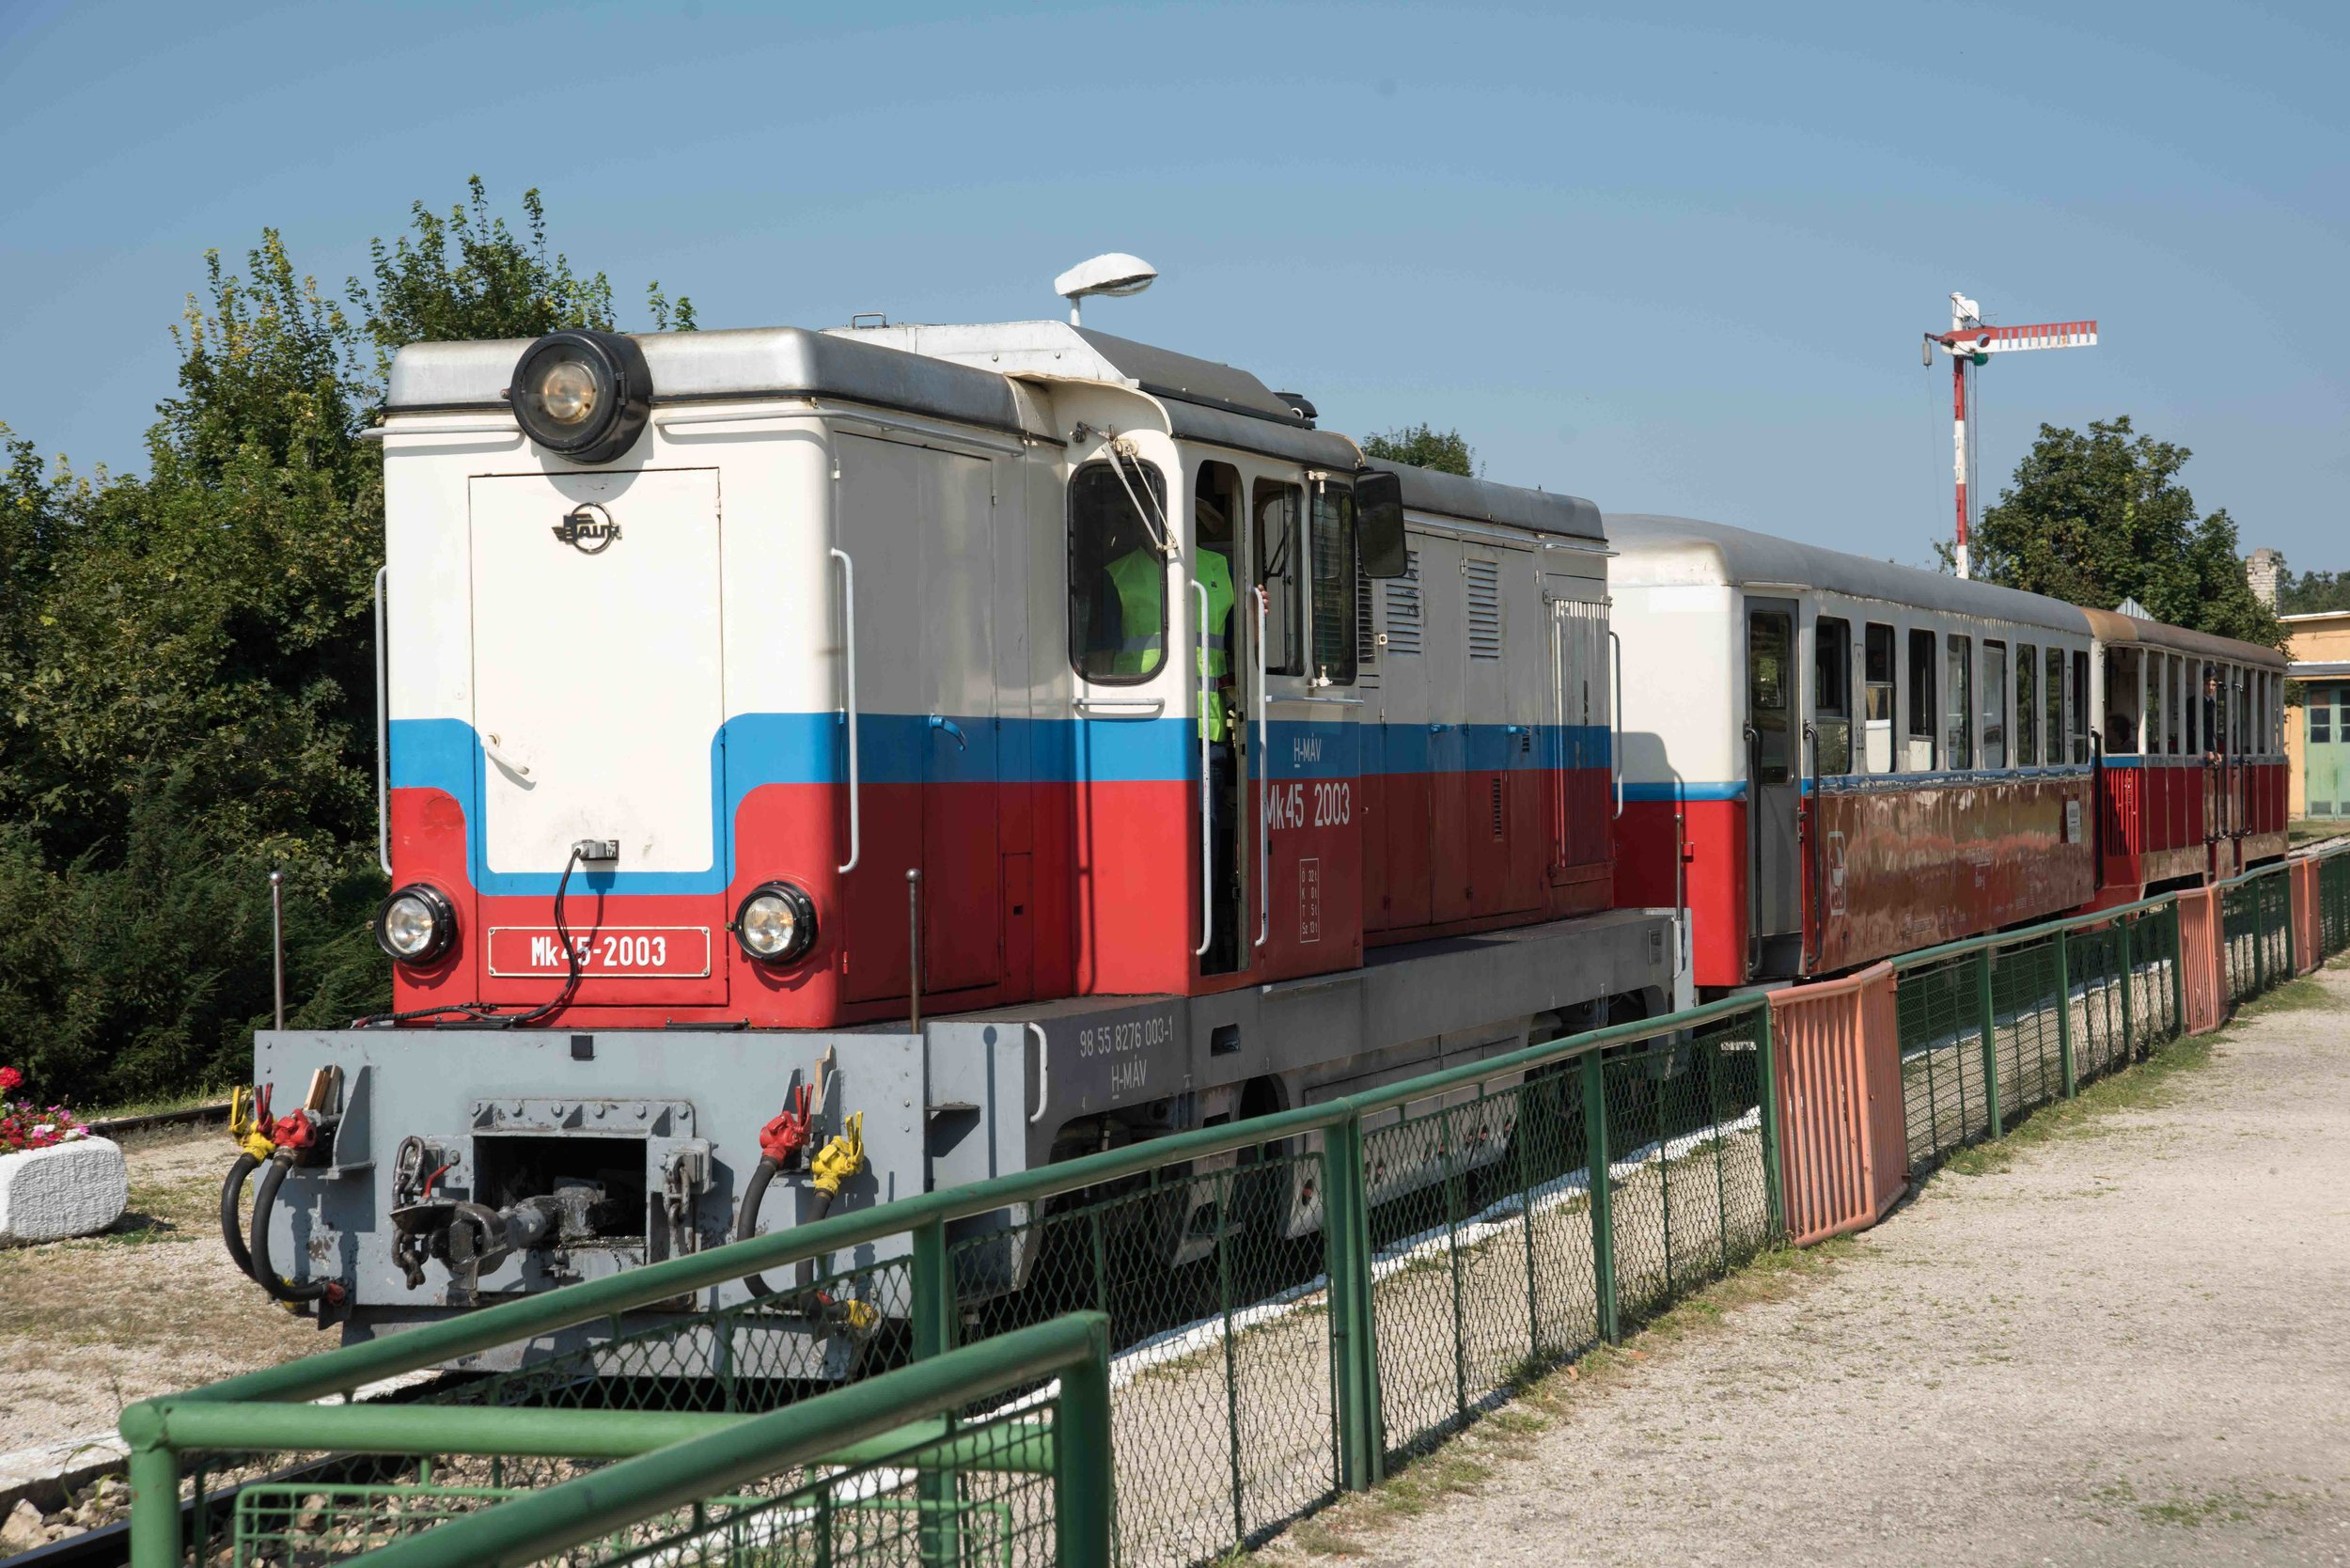 Children's Railway train, Szechenyi-hegy, Buda Hills